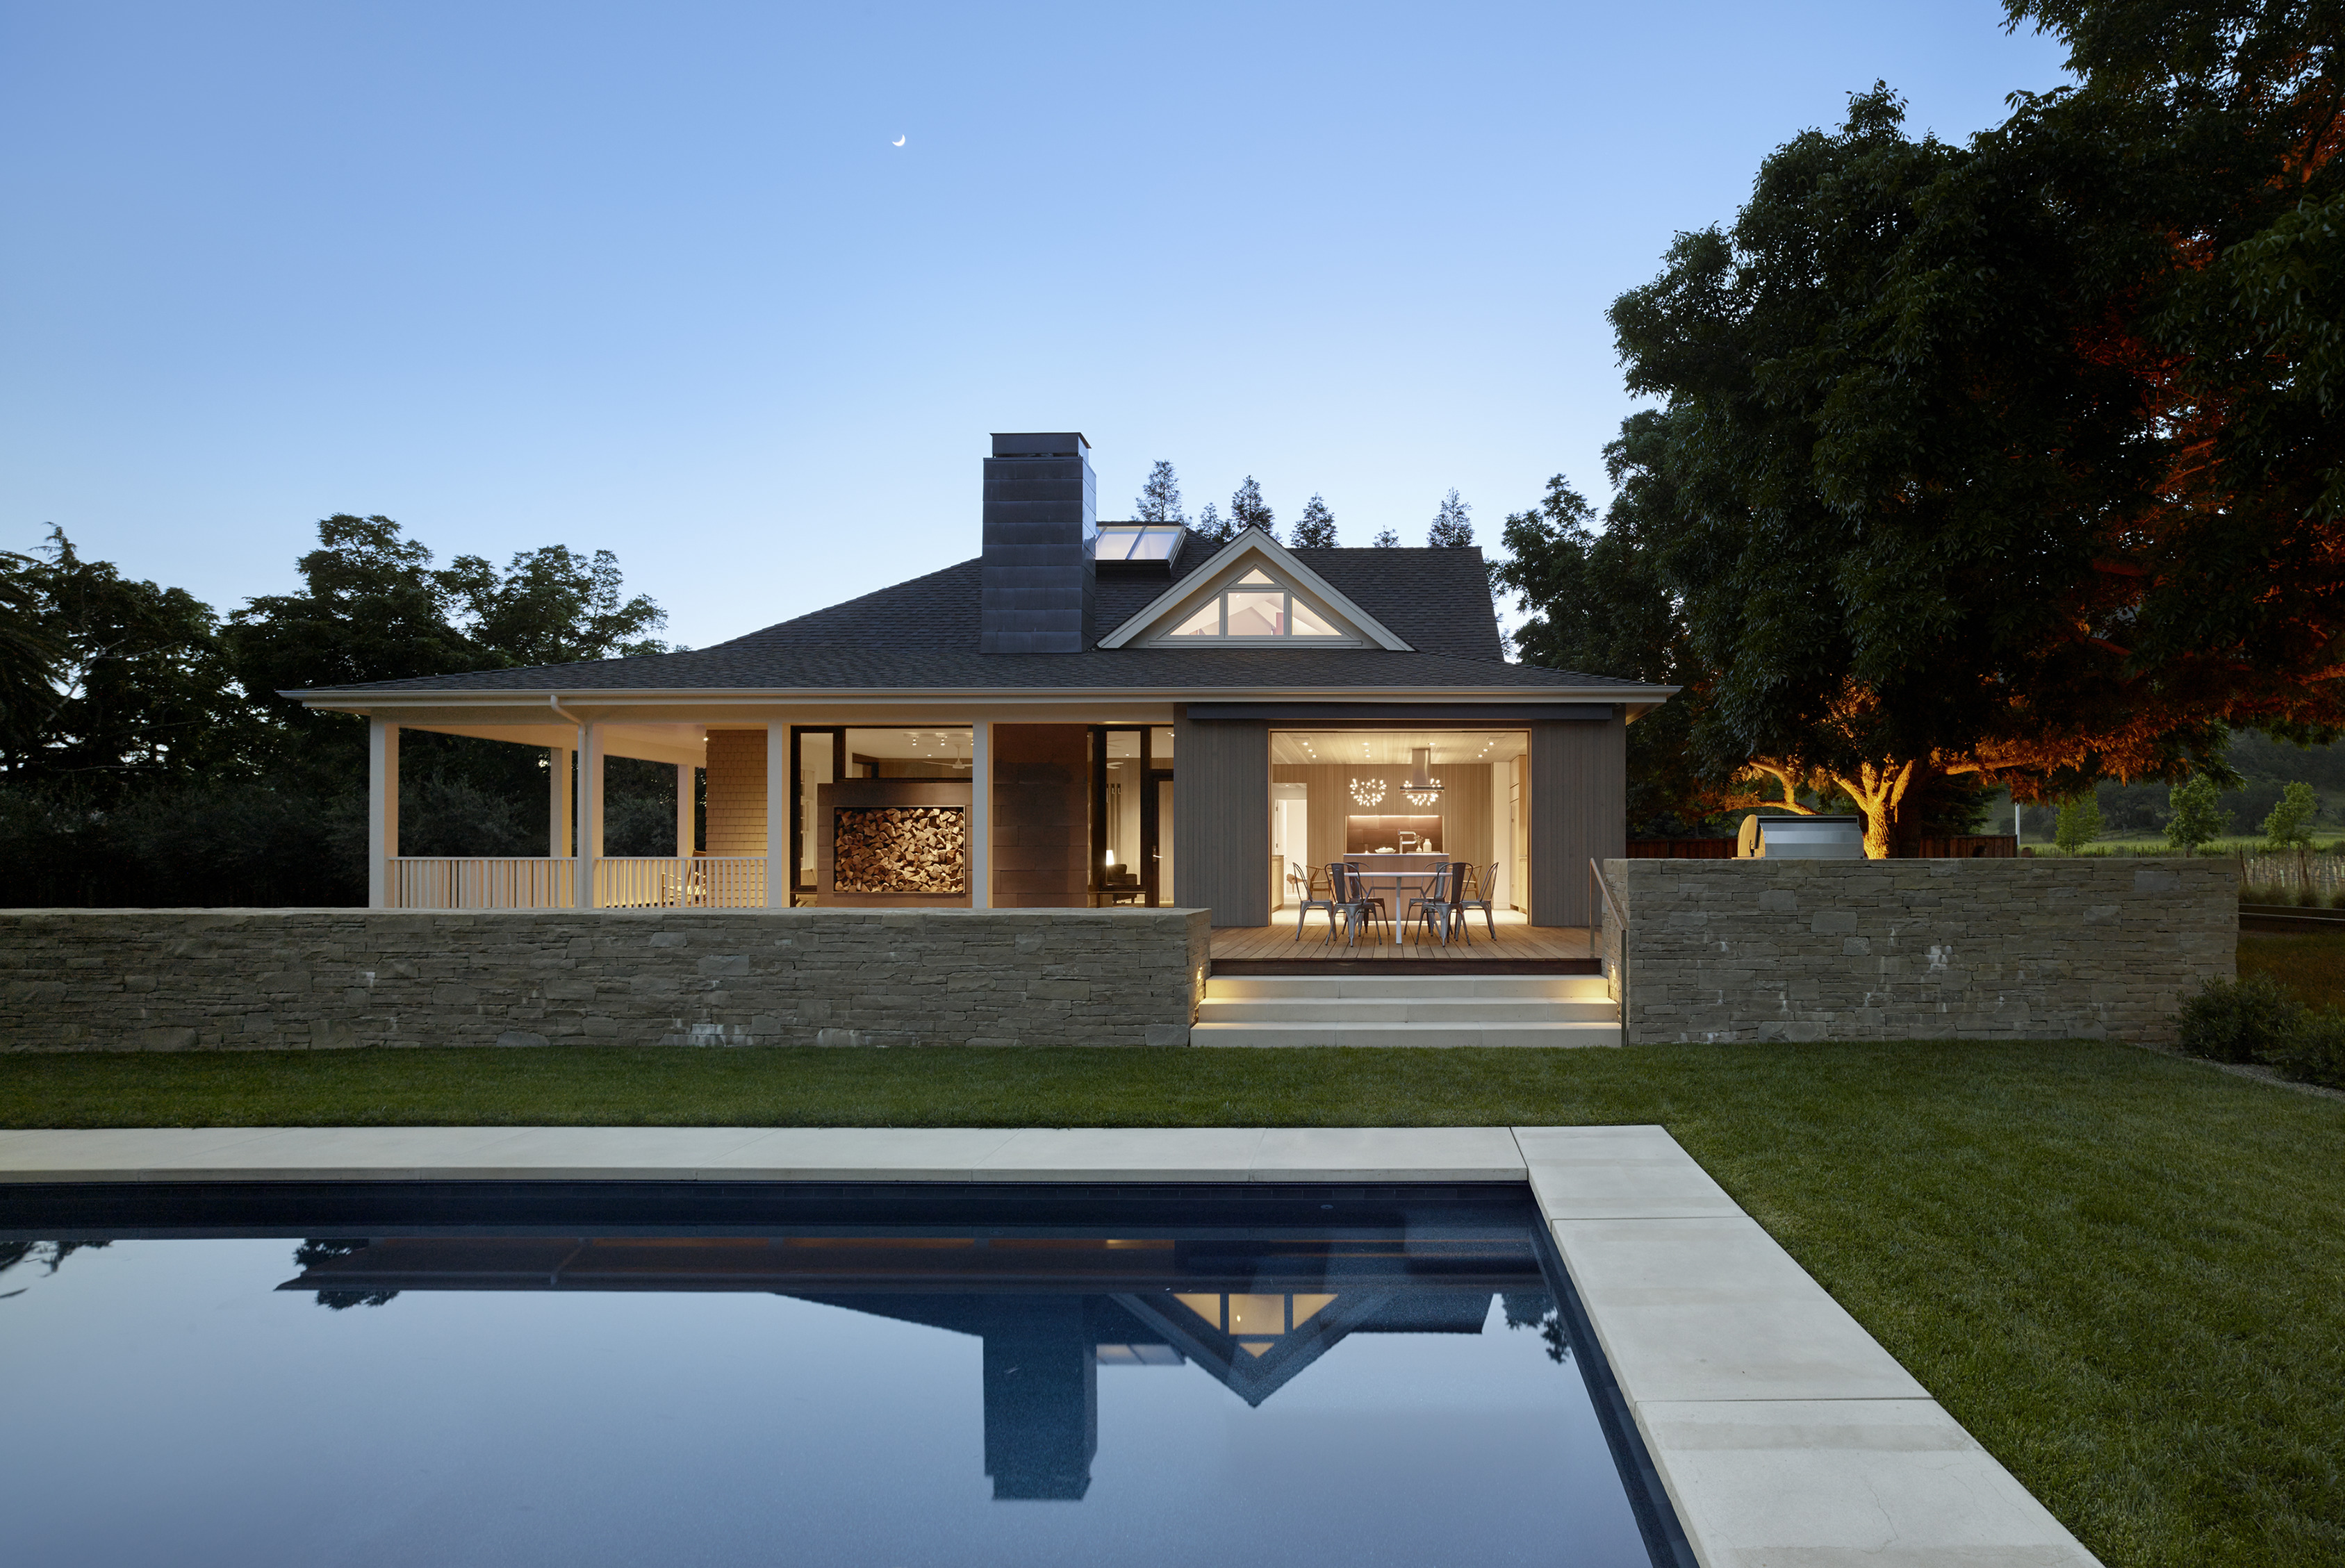 Wine Country Farmhouse in Calistoga, CA by Bohlin Cywinski Jackson